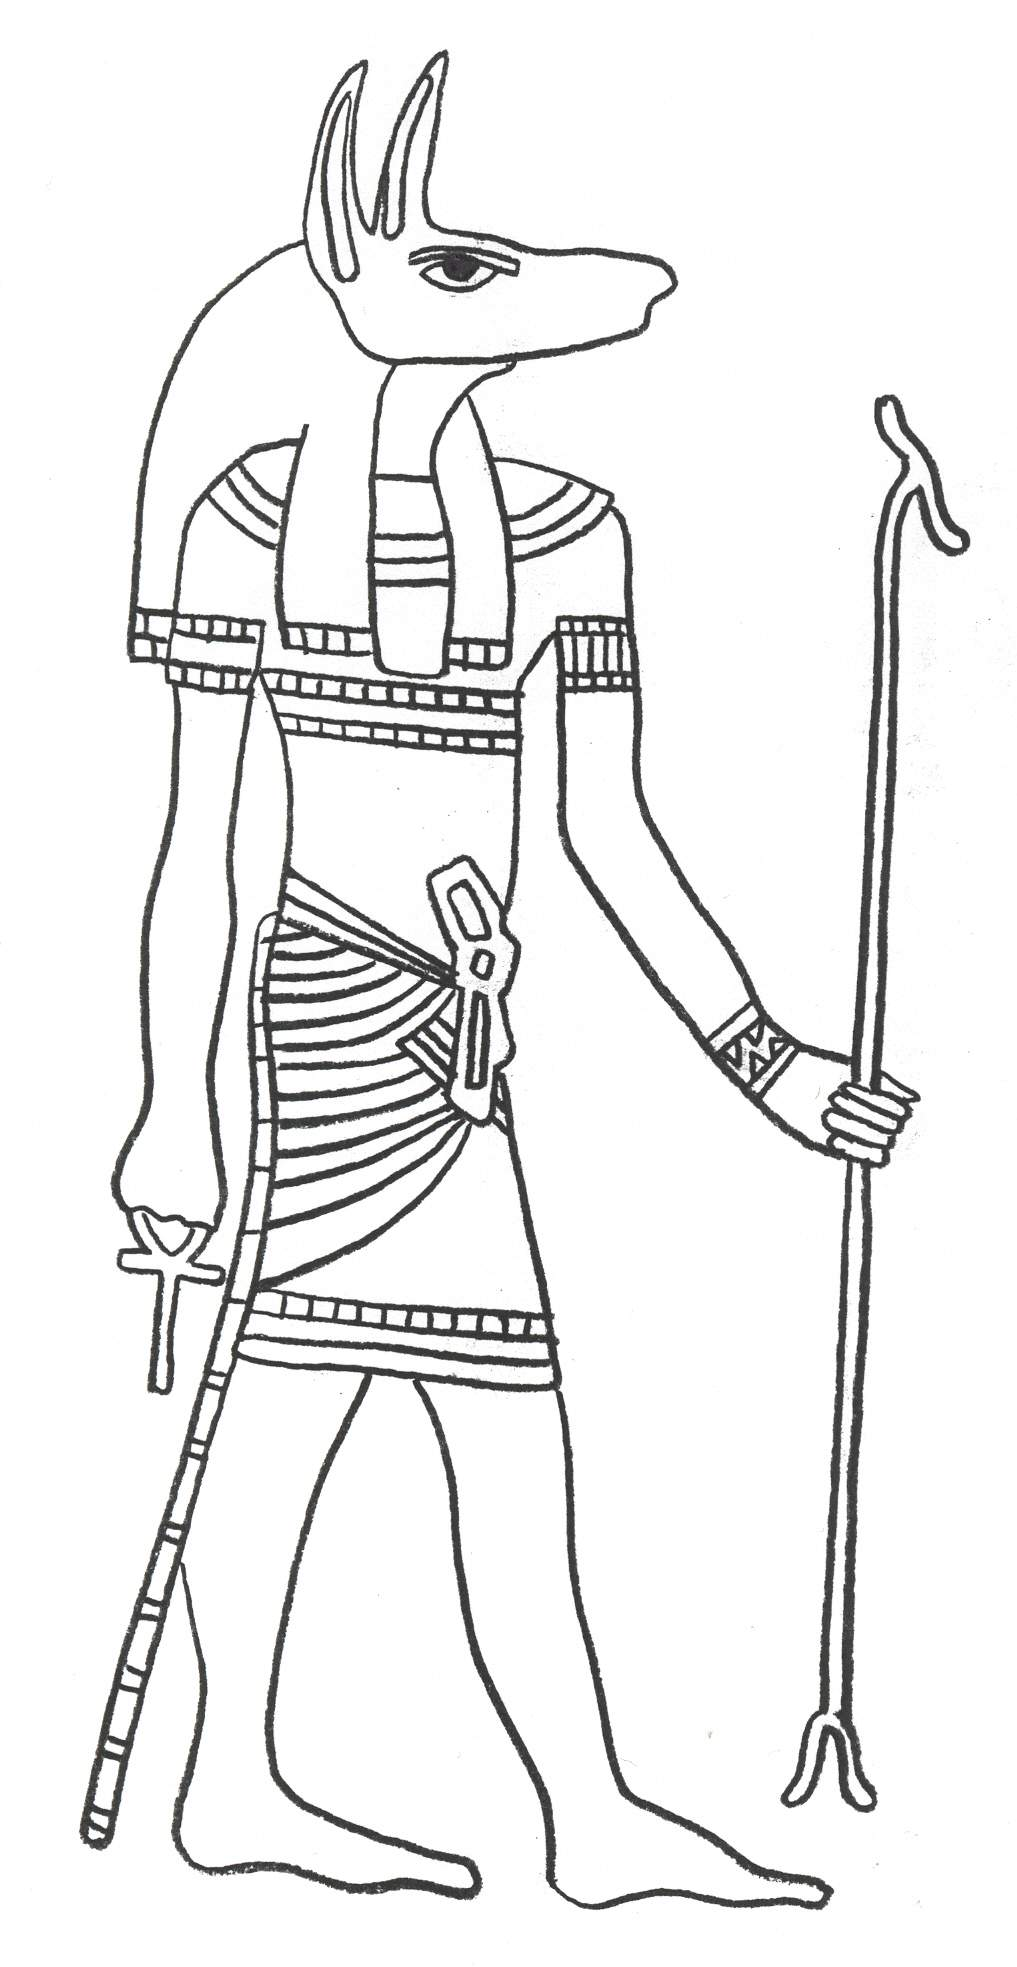 Coloring Pages Ancient Egyptian Coloring Pages free printable ancient egypt coloring pages for kids kids